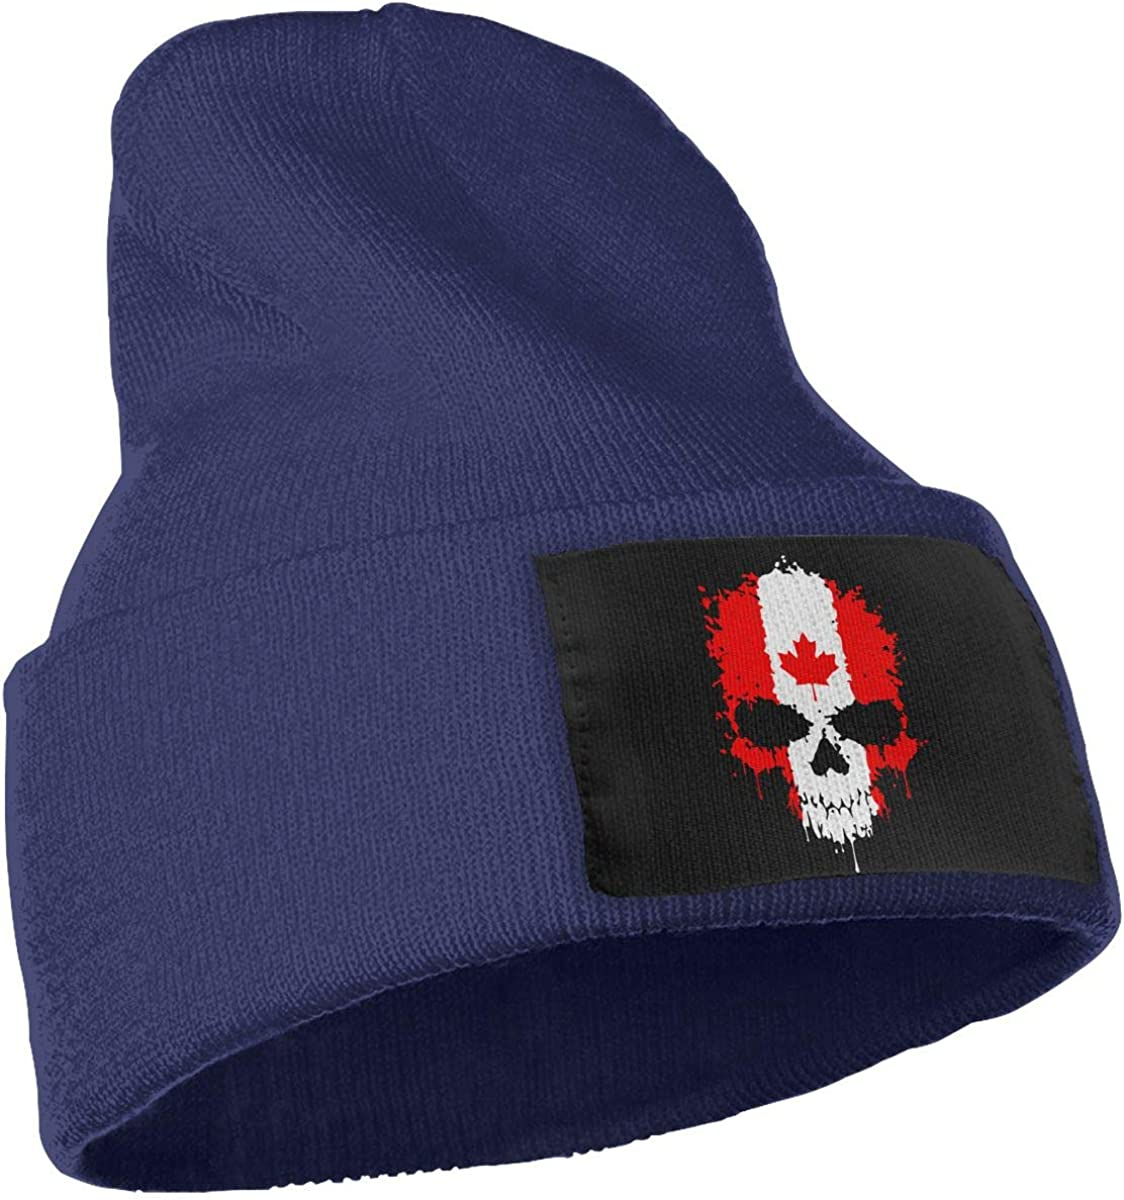 WHOO93@Y Mens Womens 100/% Acrylic Knitted Hat Cap Canadian Flag Skull Thick Skull Beanie